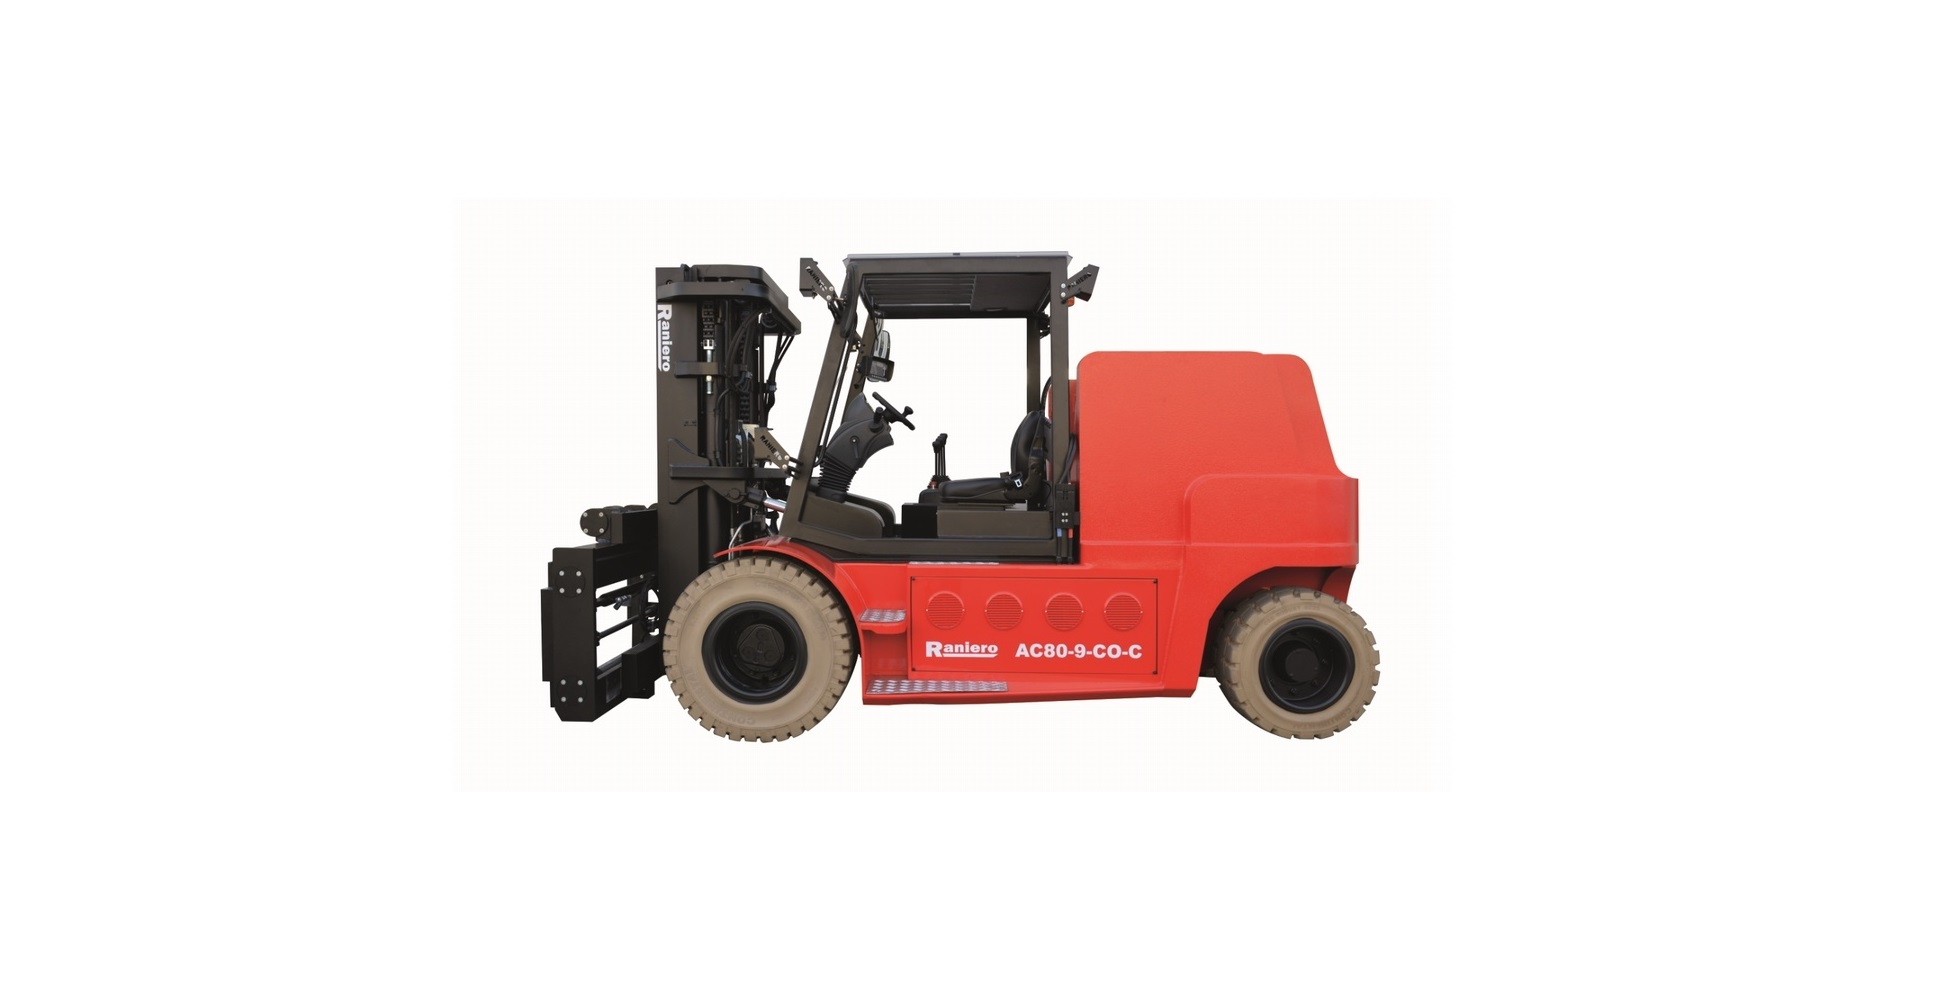 Raniero C- CONTAINER FRIENDLY 5000 KG – 10000 KG